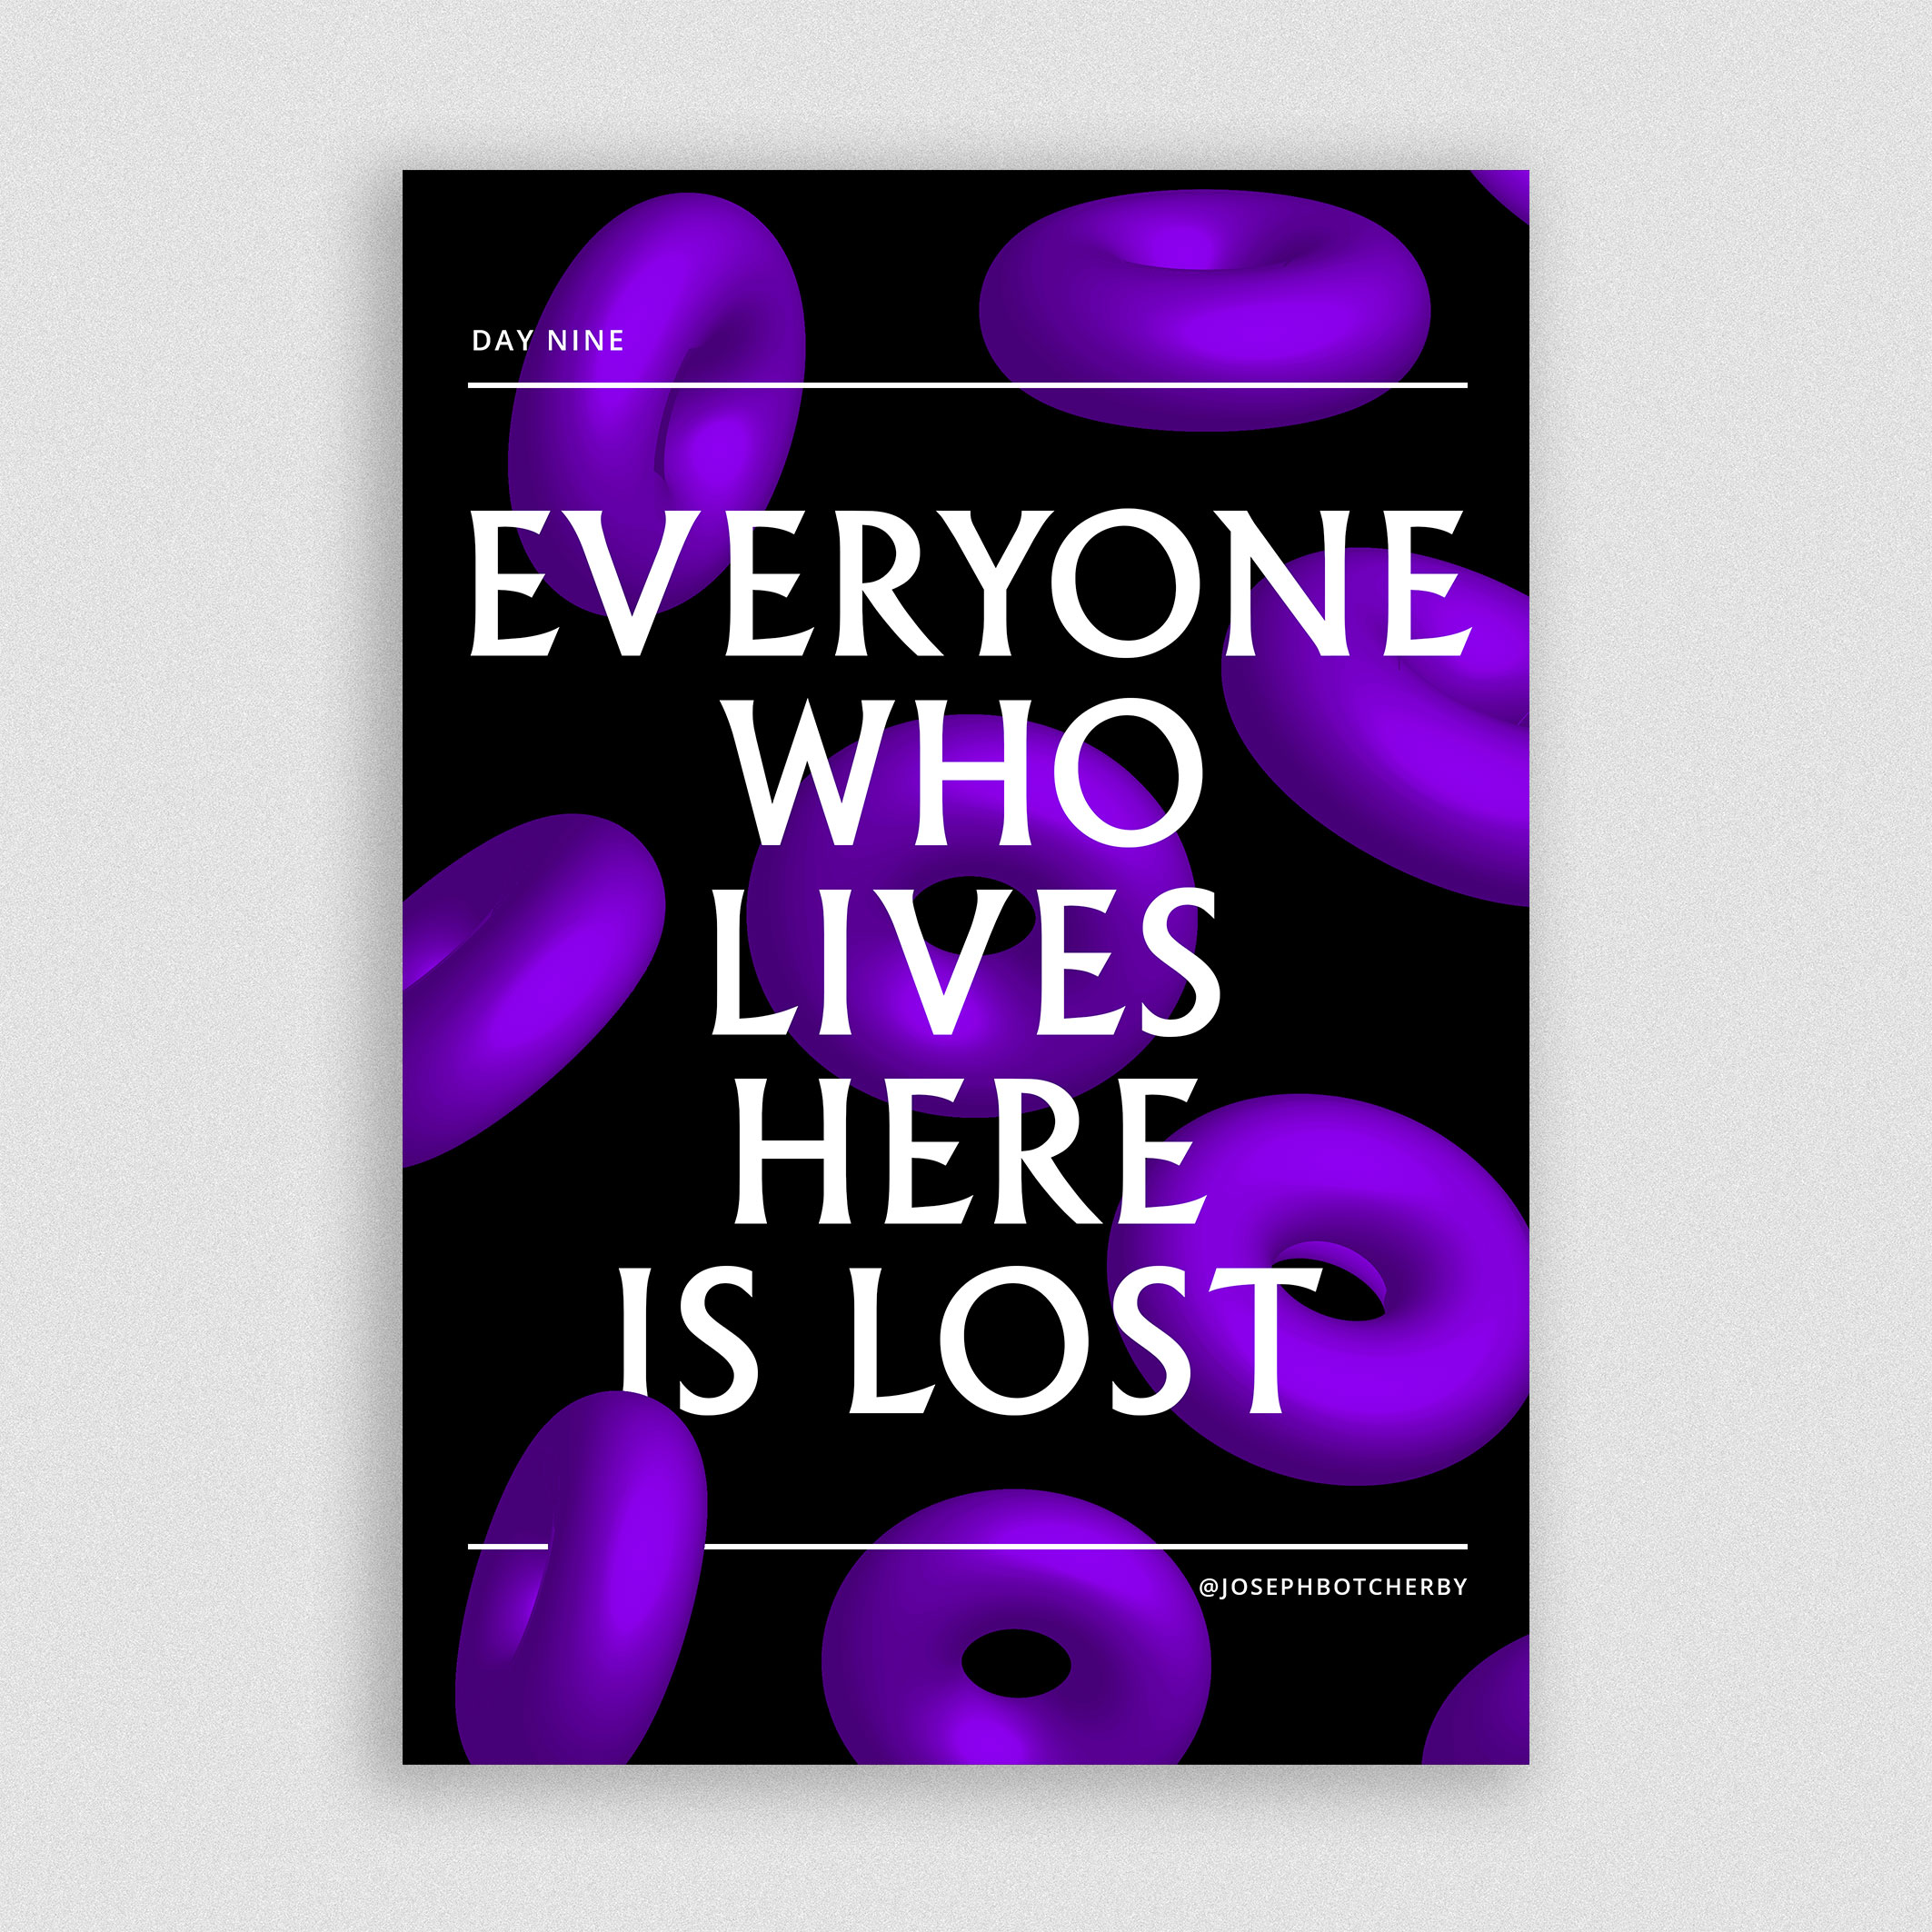 Day-9-Everyone-who-lives-here-is-lost